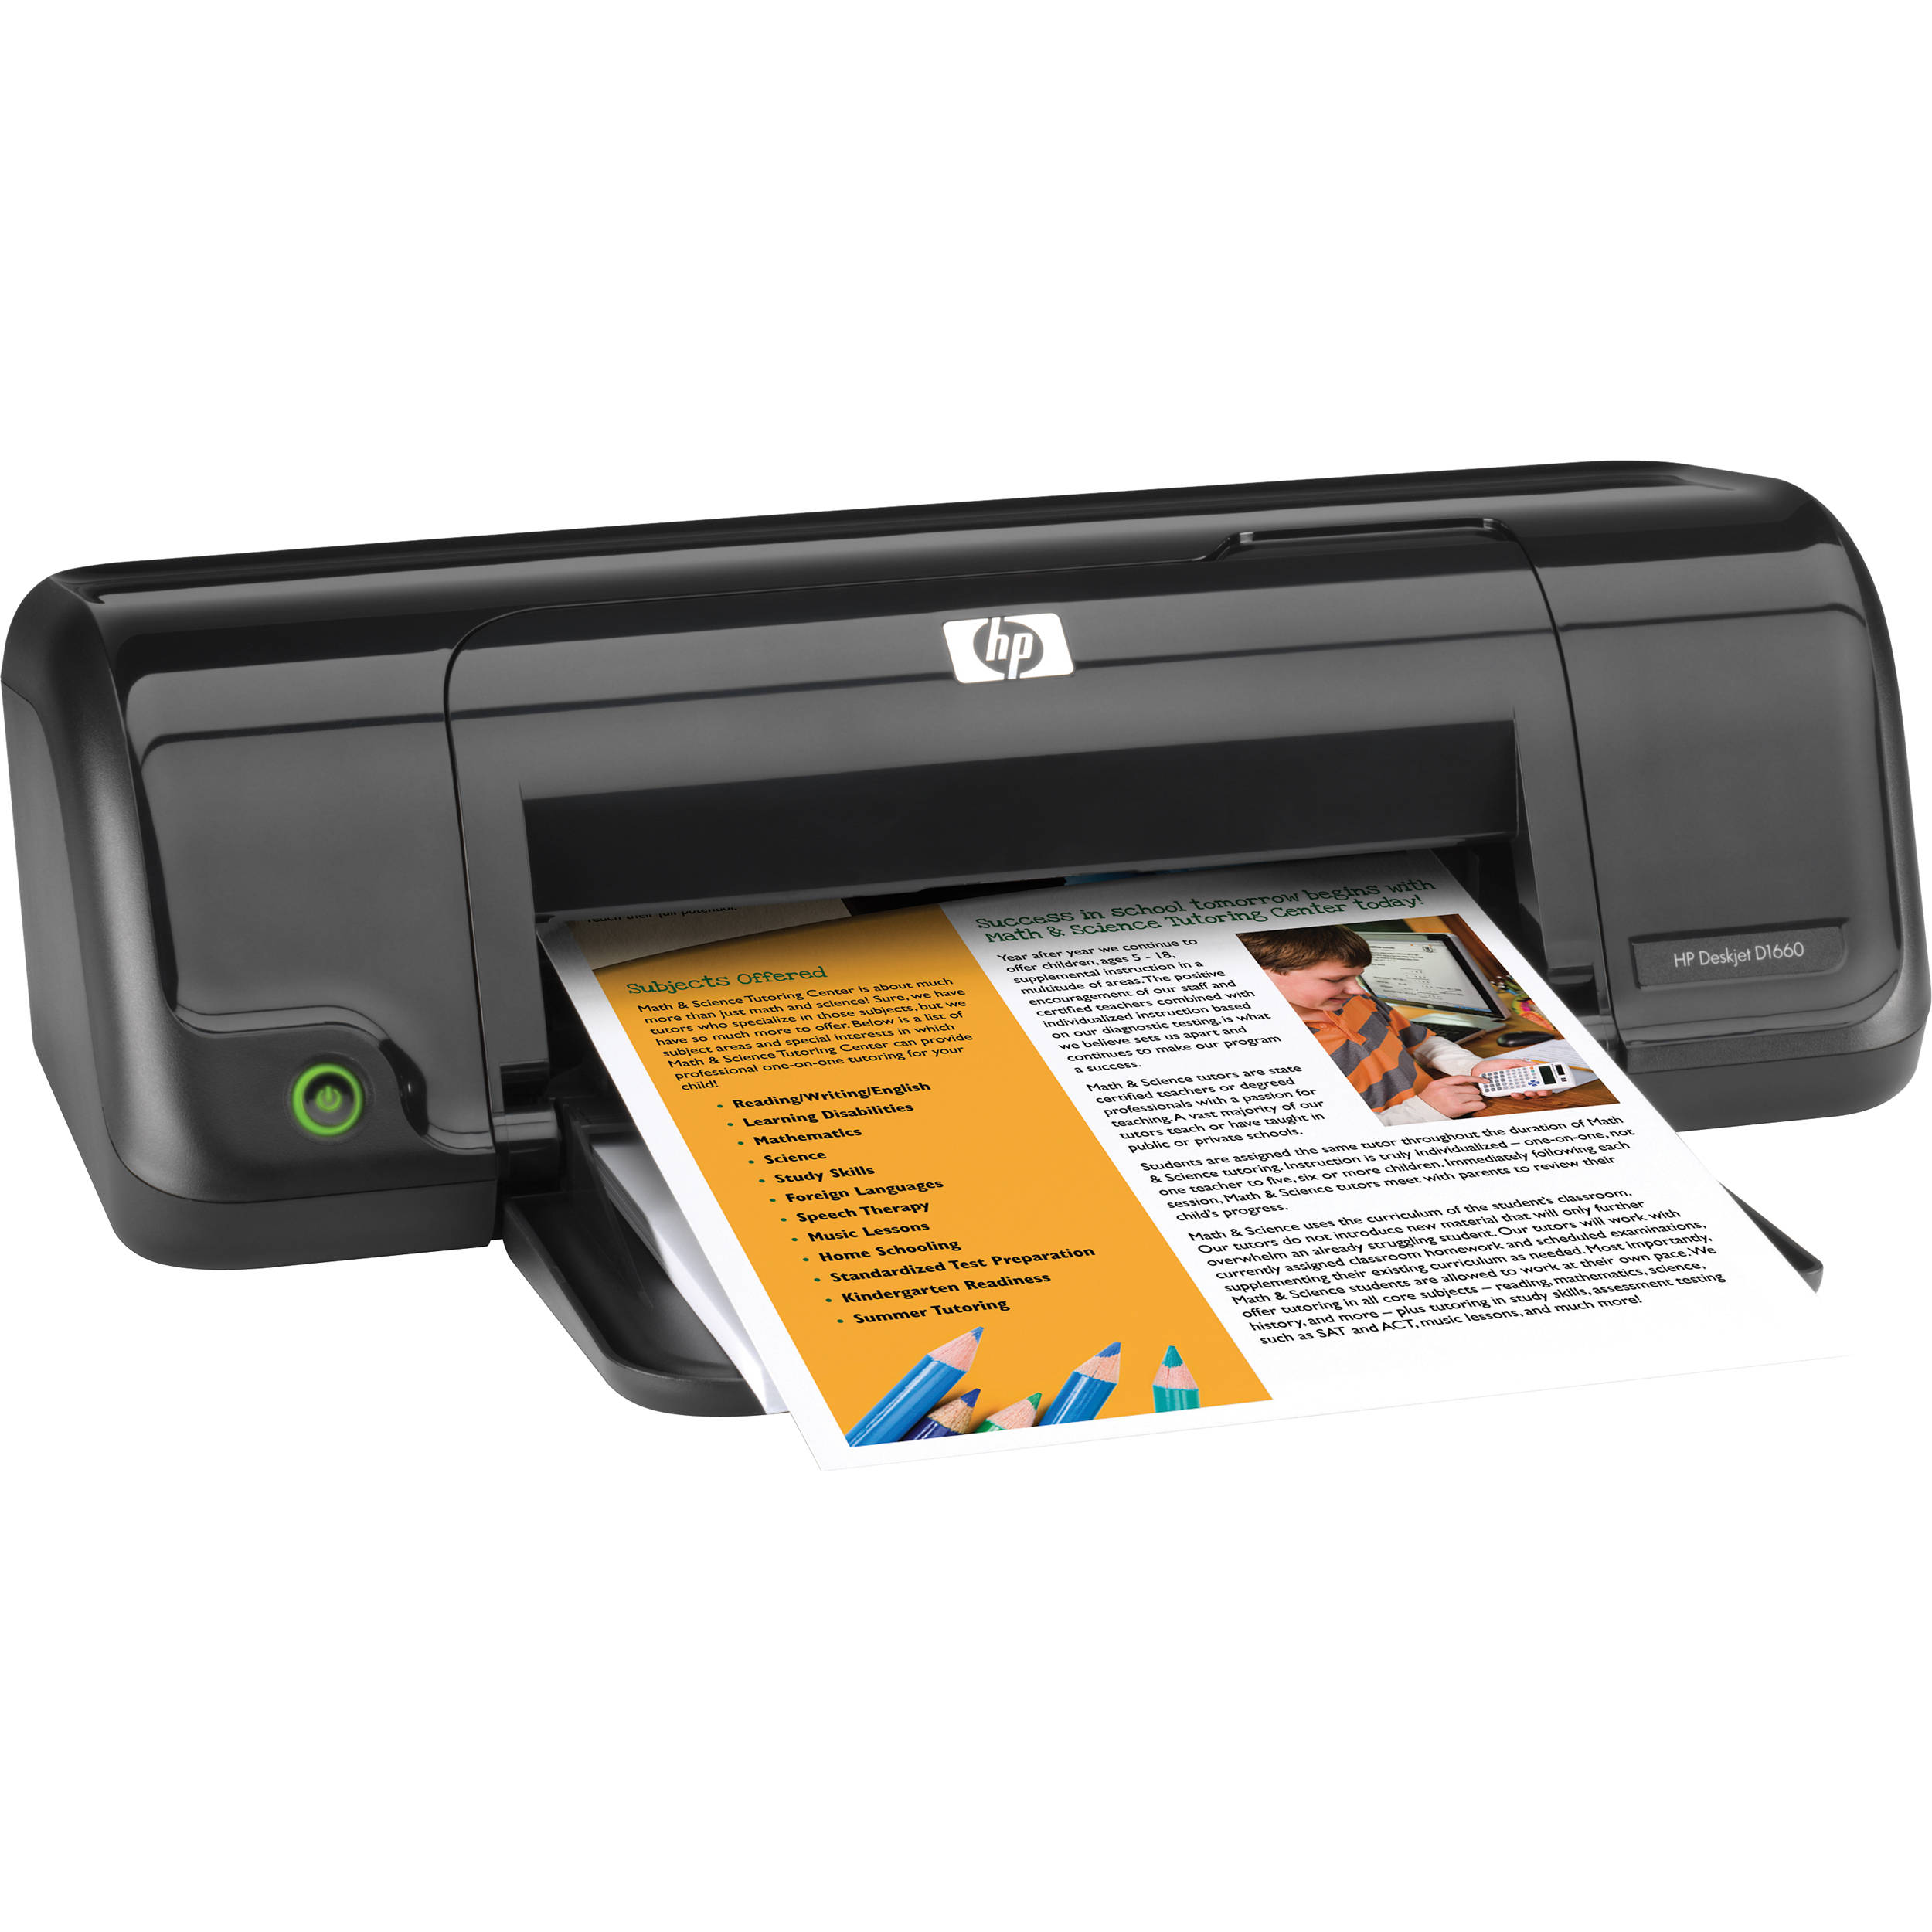 Deskjet hp driver series printer d1660